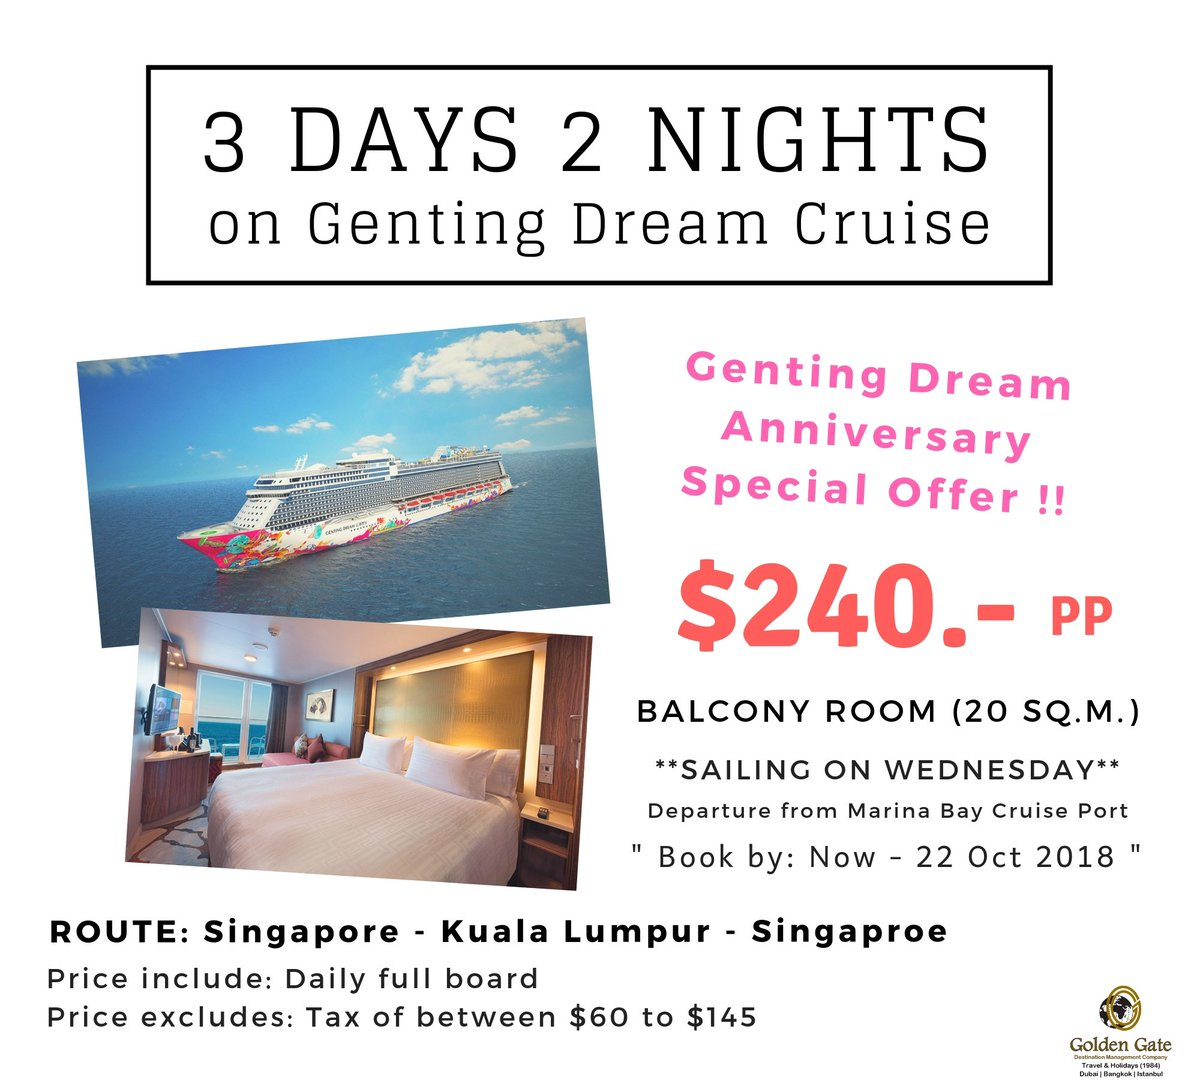 Gentingdreamcruise Hashtag On Twitter